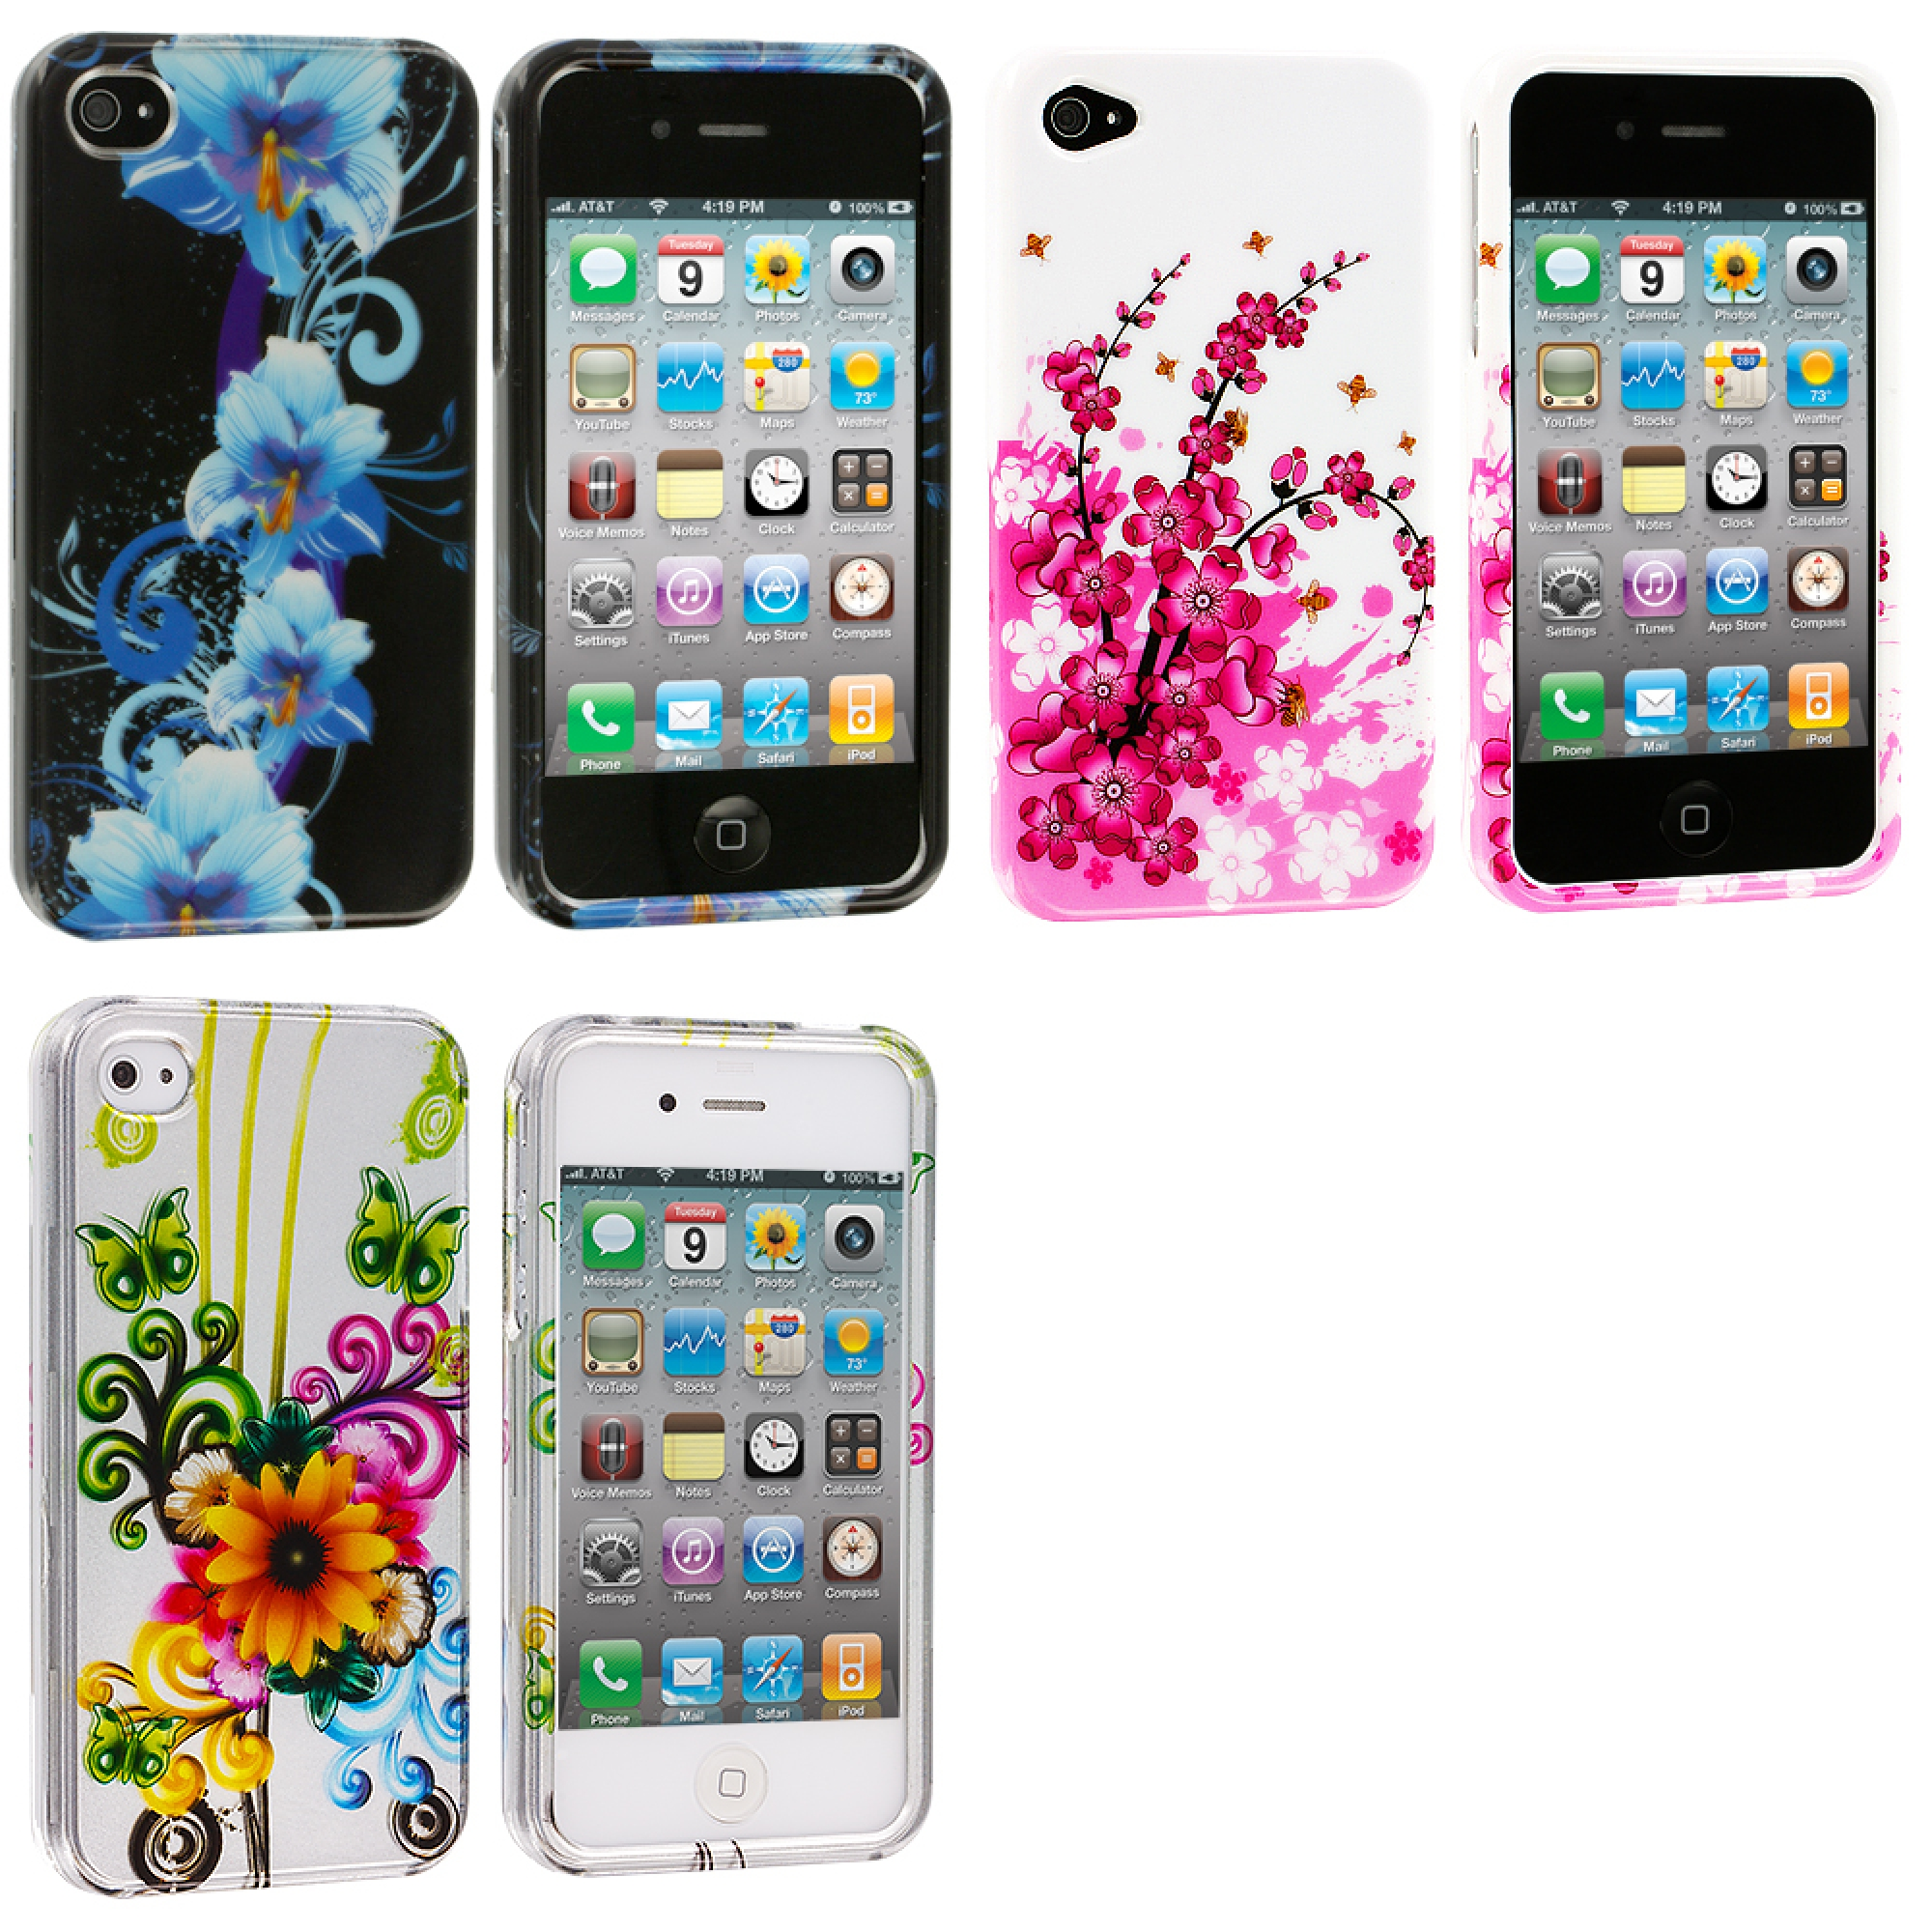 Apple iPhone 4 / 4S 3 in 1 Combo Bundle Pack - Flower Design Crystal Hard Case Cover